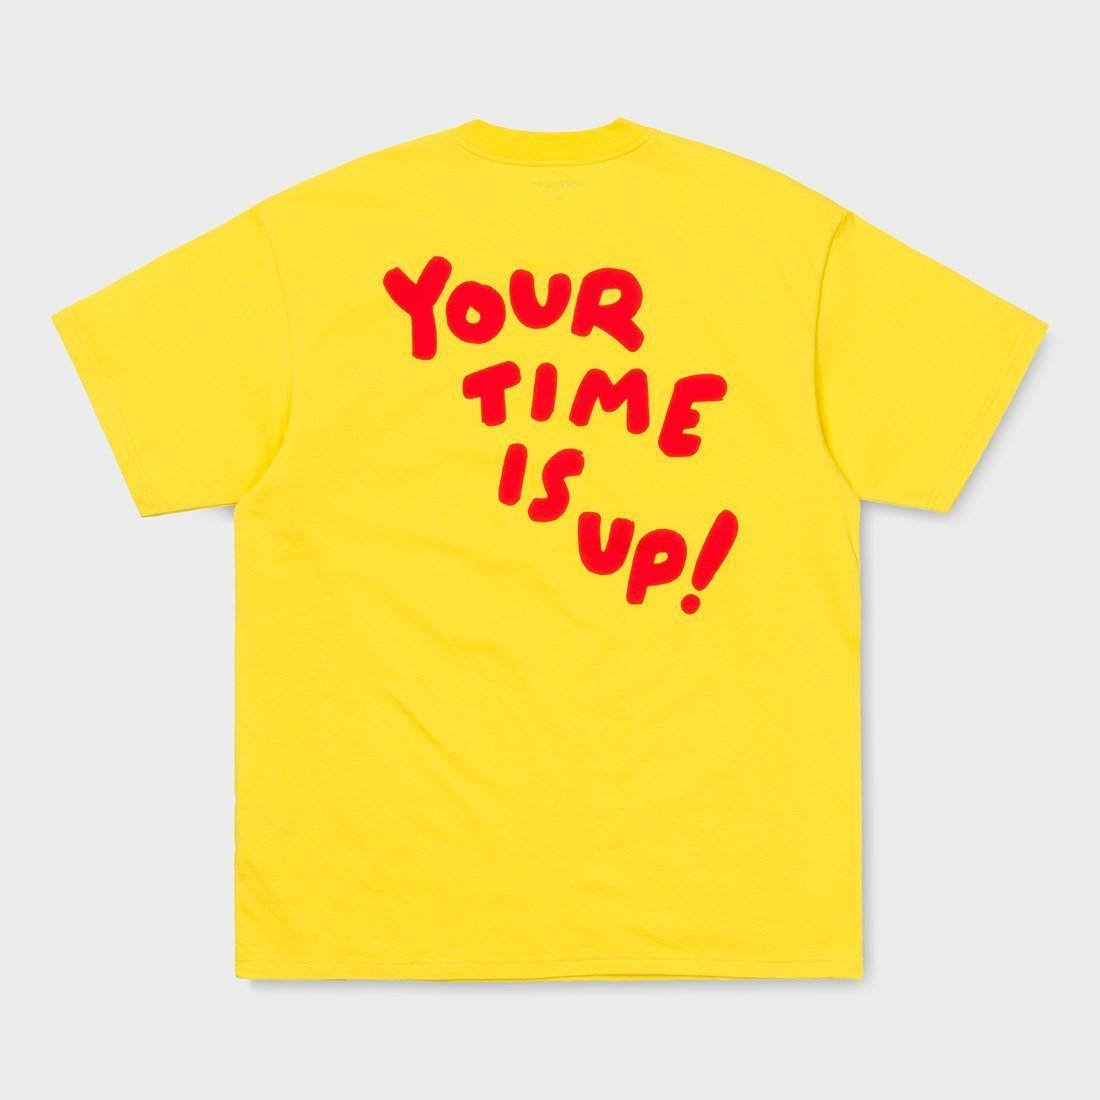 TIME IS UP T-SHIRT - Carhartt wip